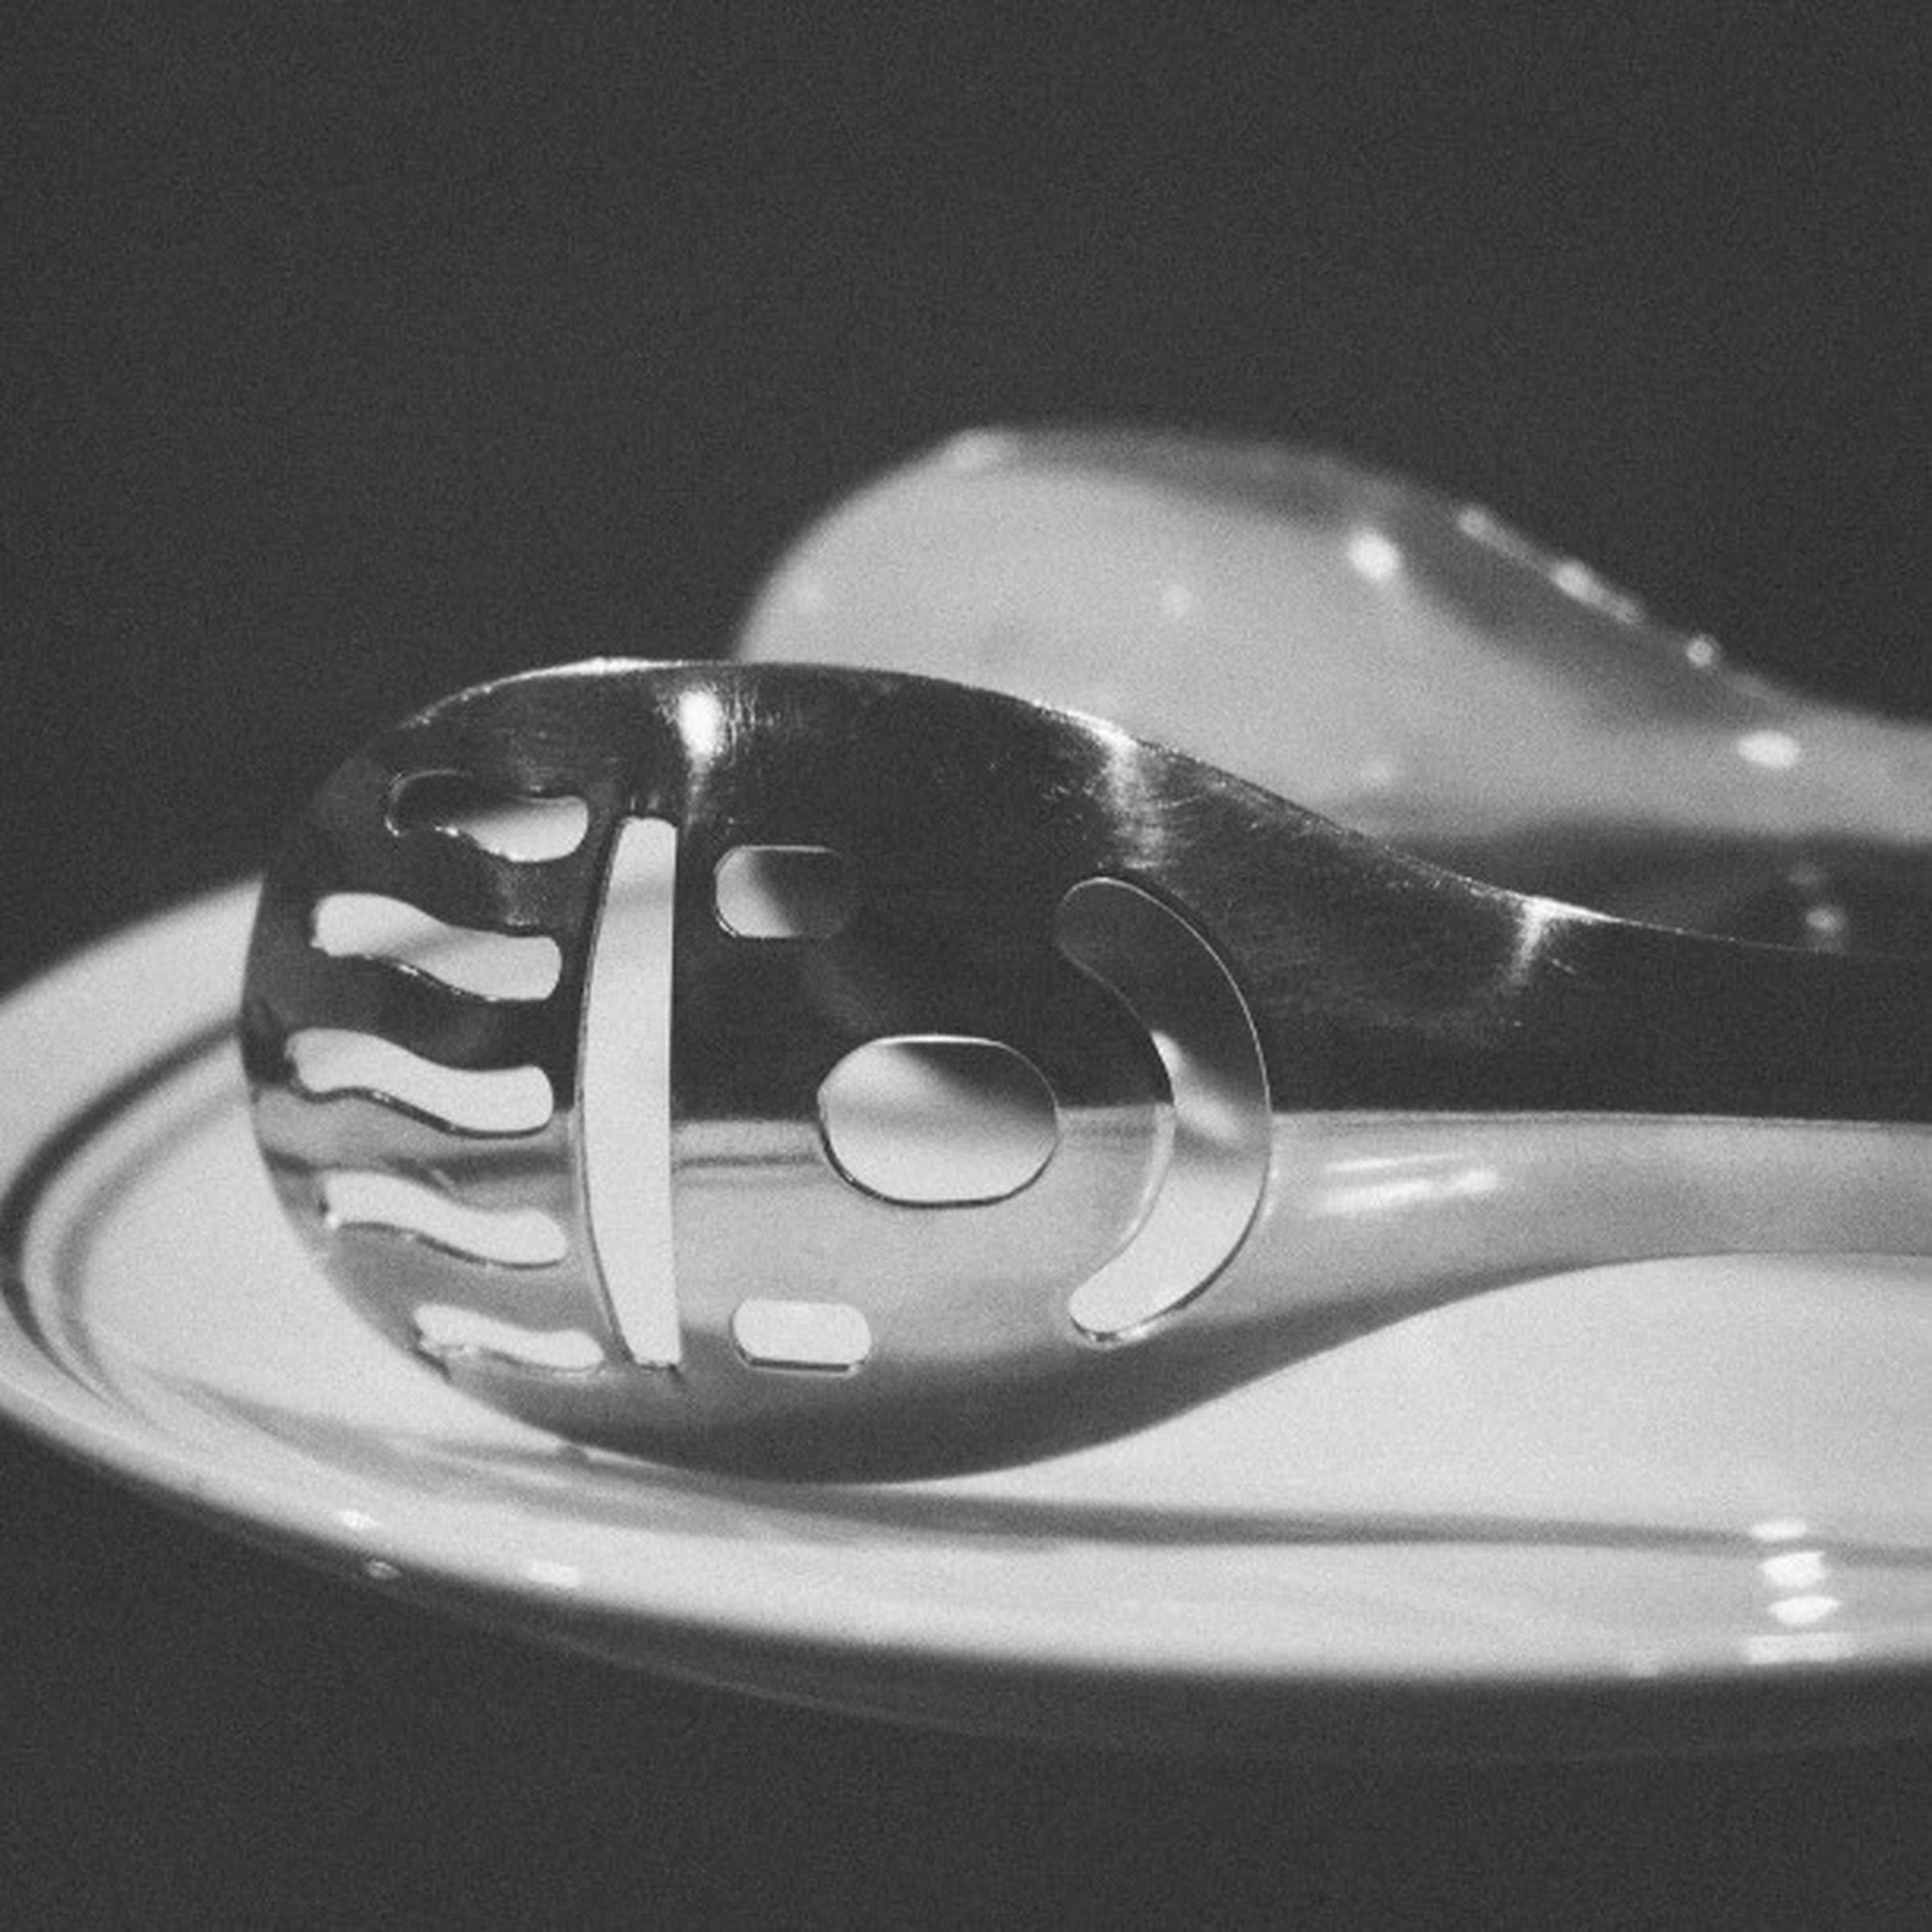 indoors, close-up, still life, table, high angle view, technology, single object, selective focus, no people, focus on foreground, metal, studio shot, black color, shiny, man made object, detail, reflection, old-fashioned, music, sink